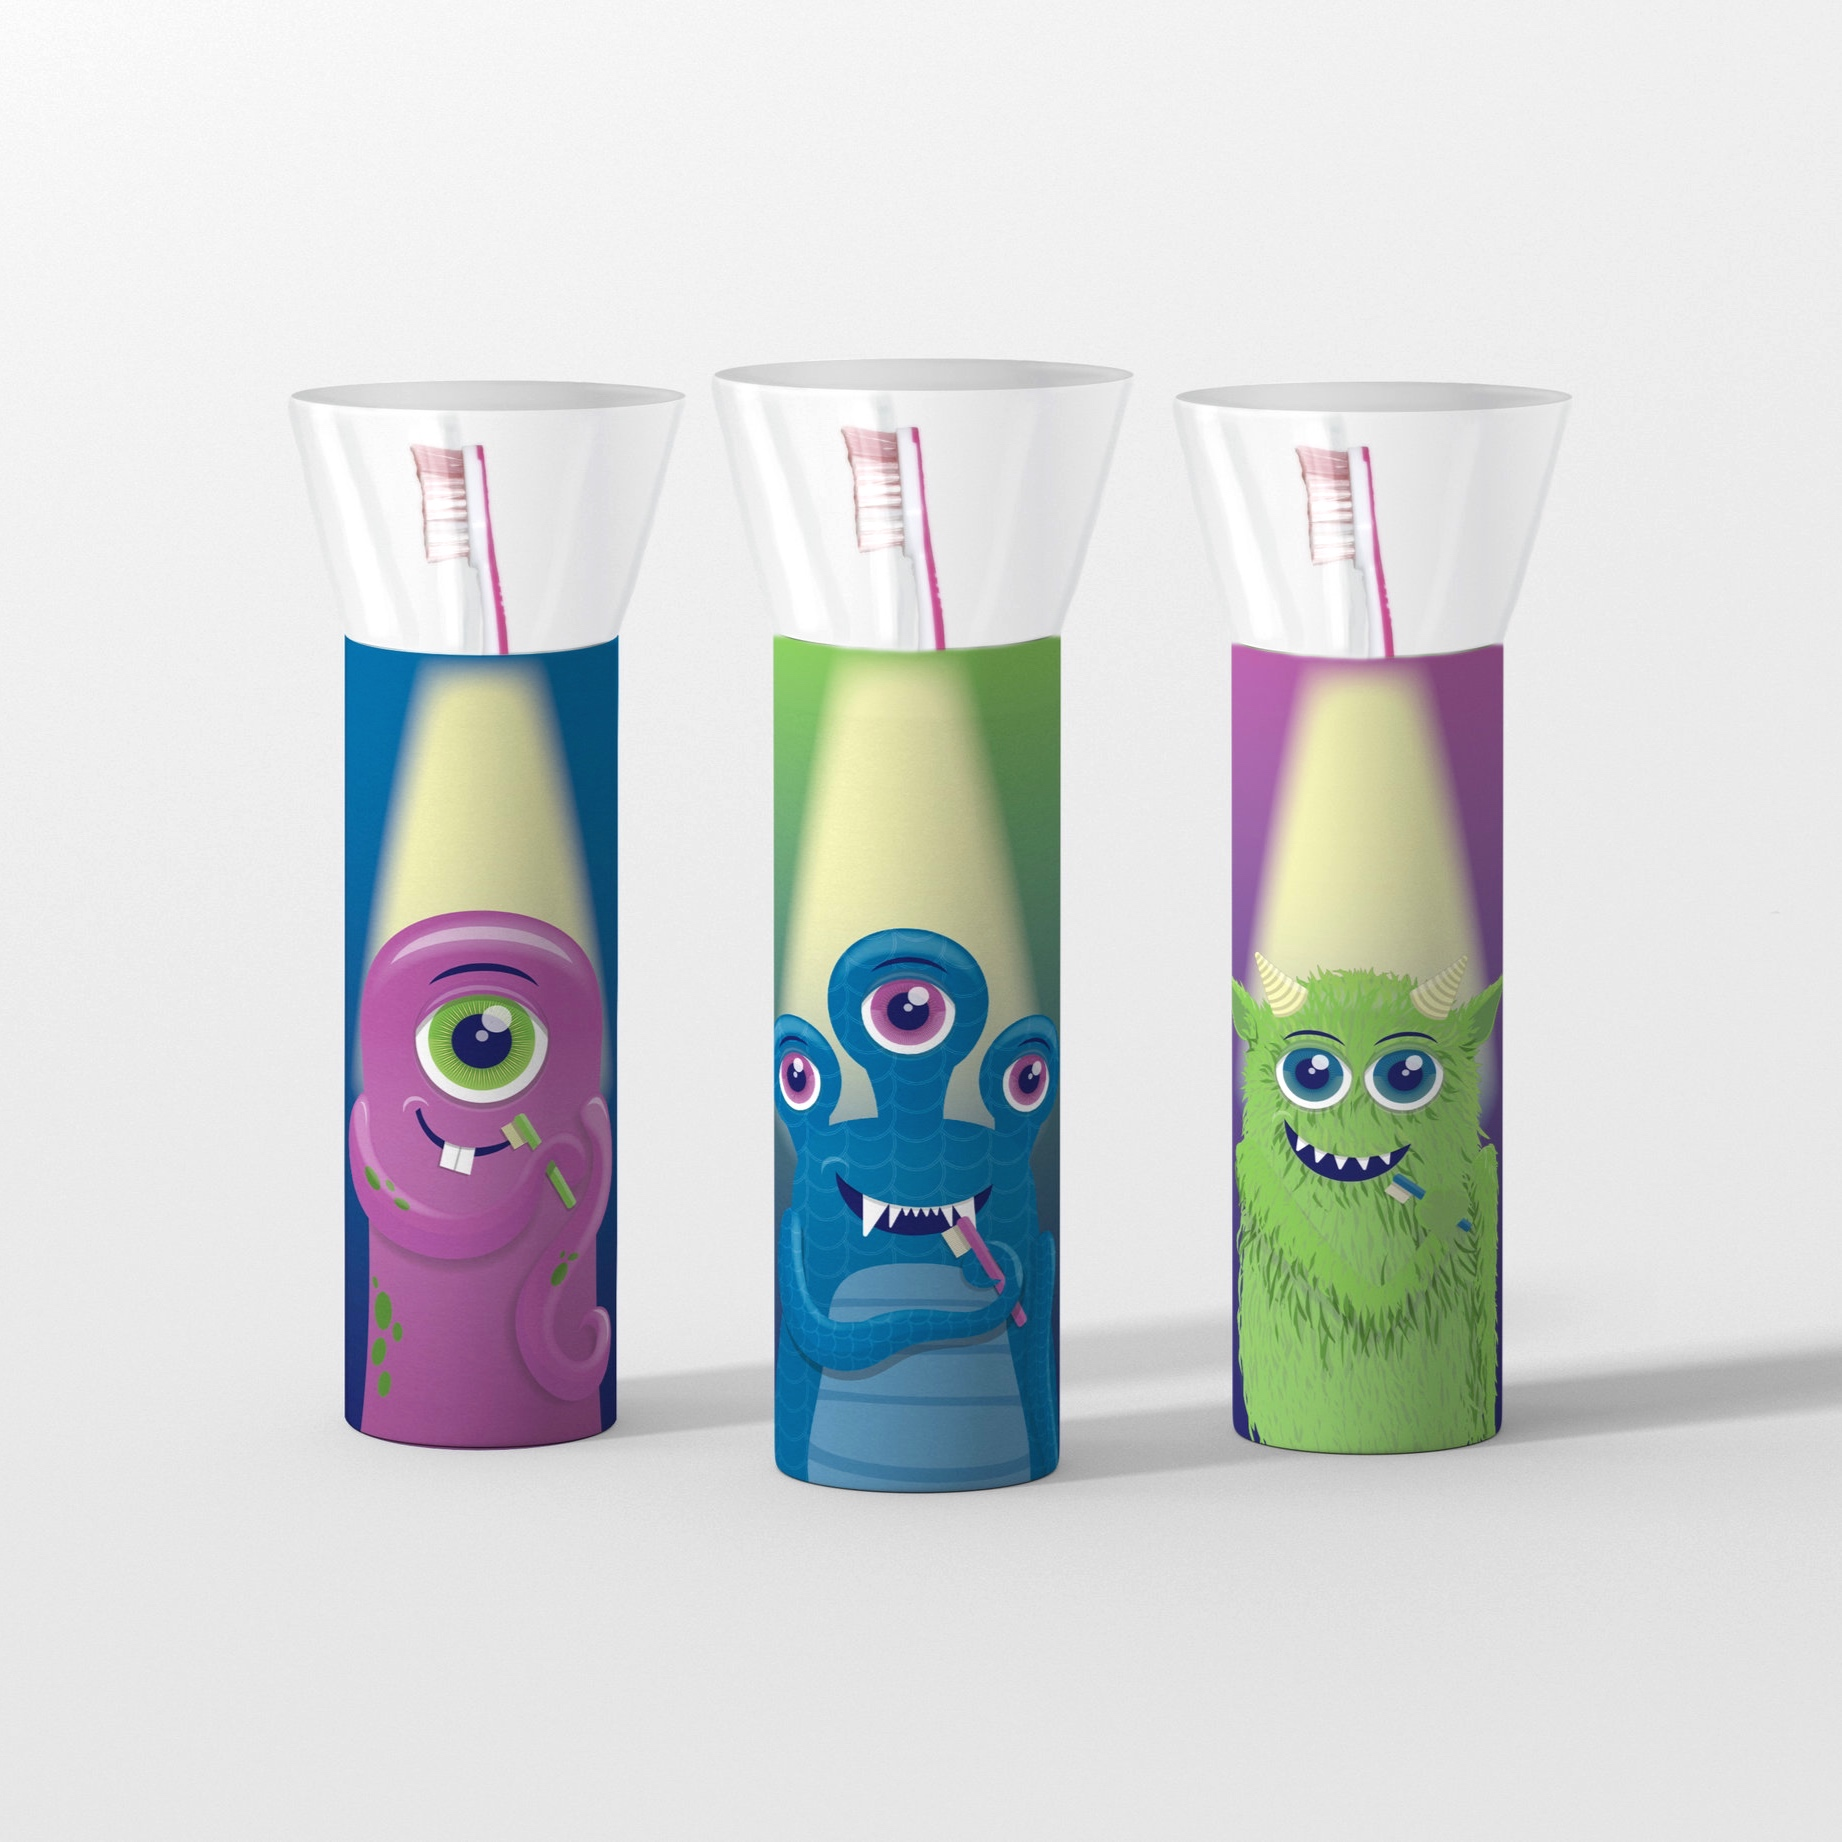 Flashlight shaped packaging design, featuring transparent tops and bottoms.